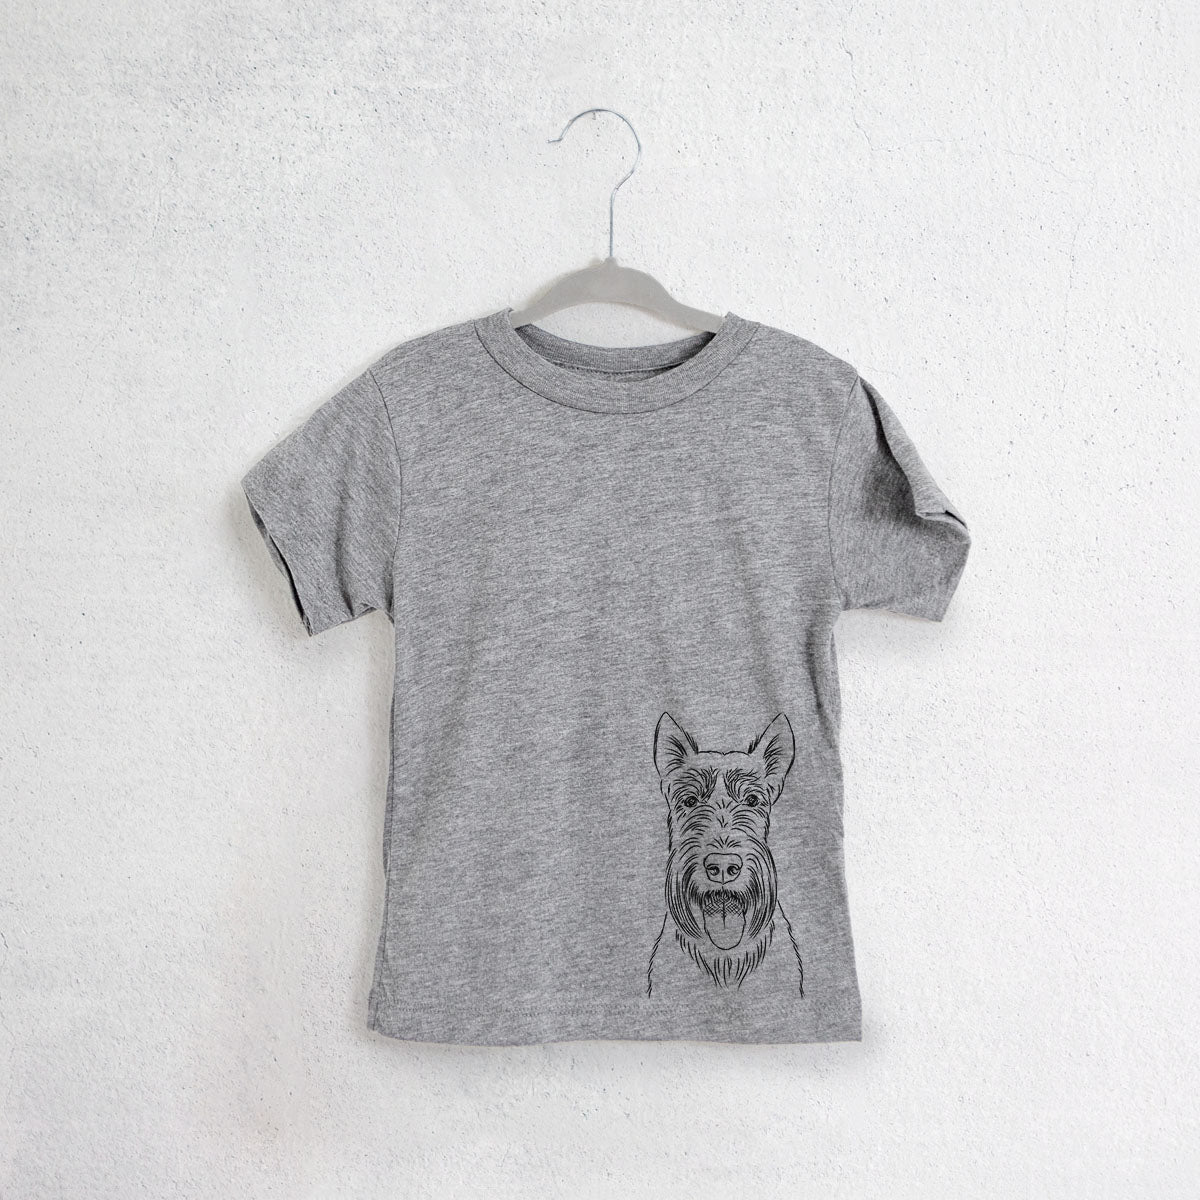 Oswald the Scottish Terrier - Kids/Youth/Toddler Shirt